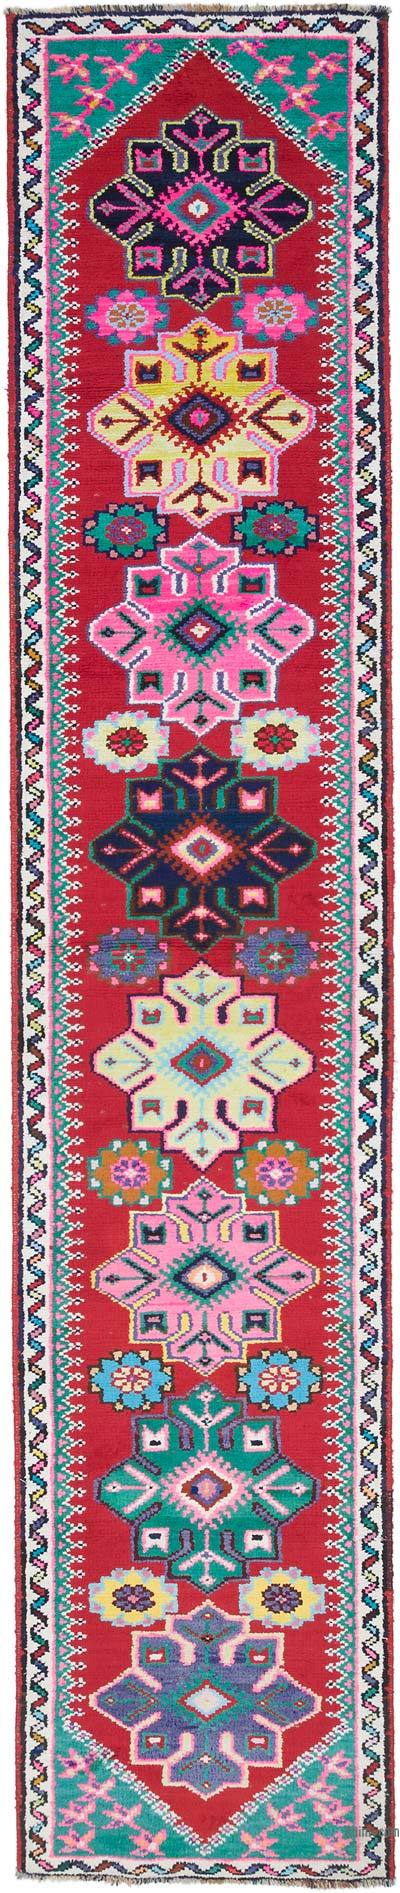 "Vintage Turkish Runner Rug - 2' 11"" x 10' 11"" (35 in. x 131 in.)"